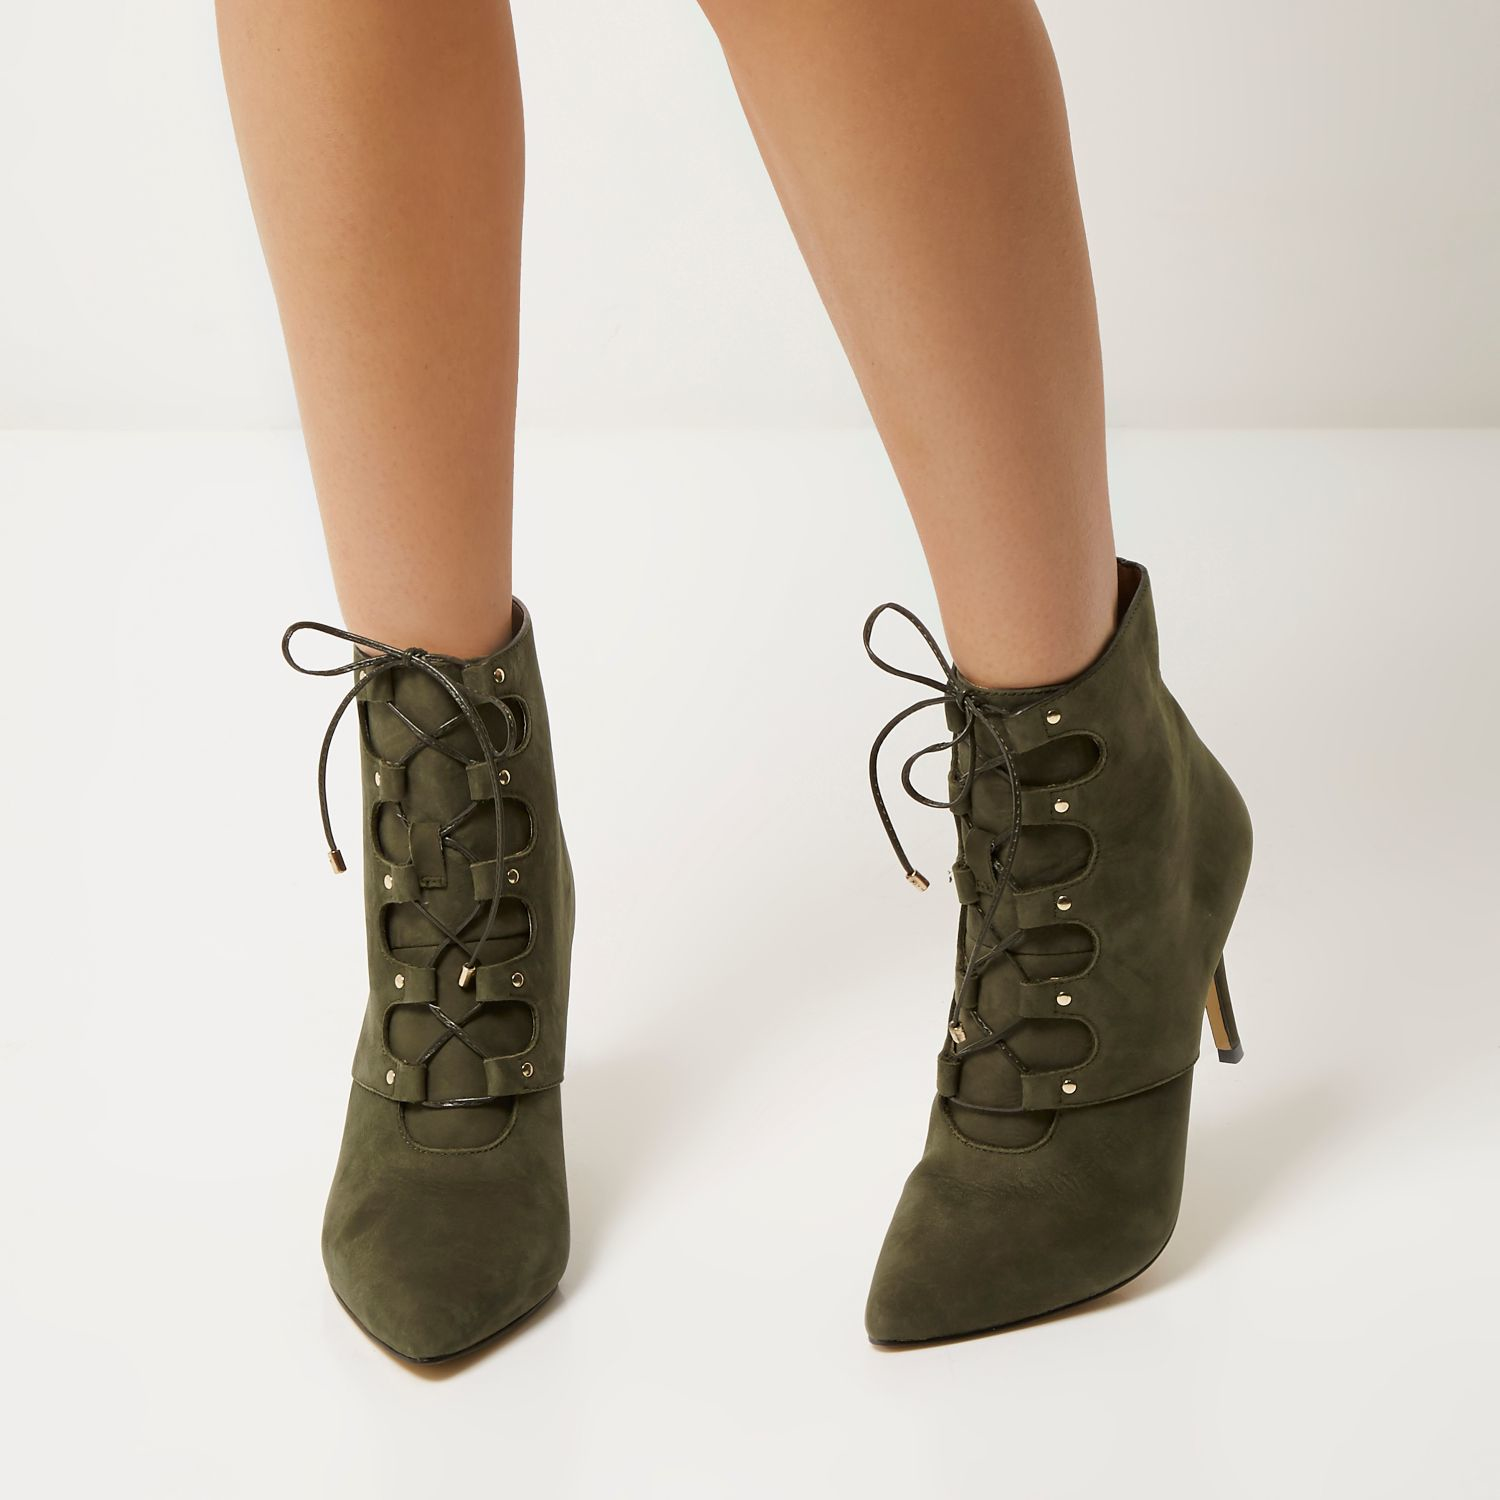 River island Khaki Leather Lace-up Pointed Heeled Boots in Natural